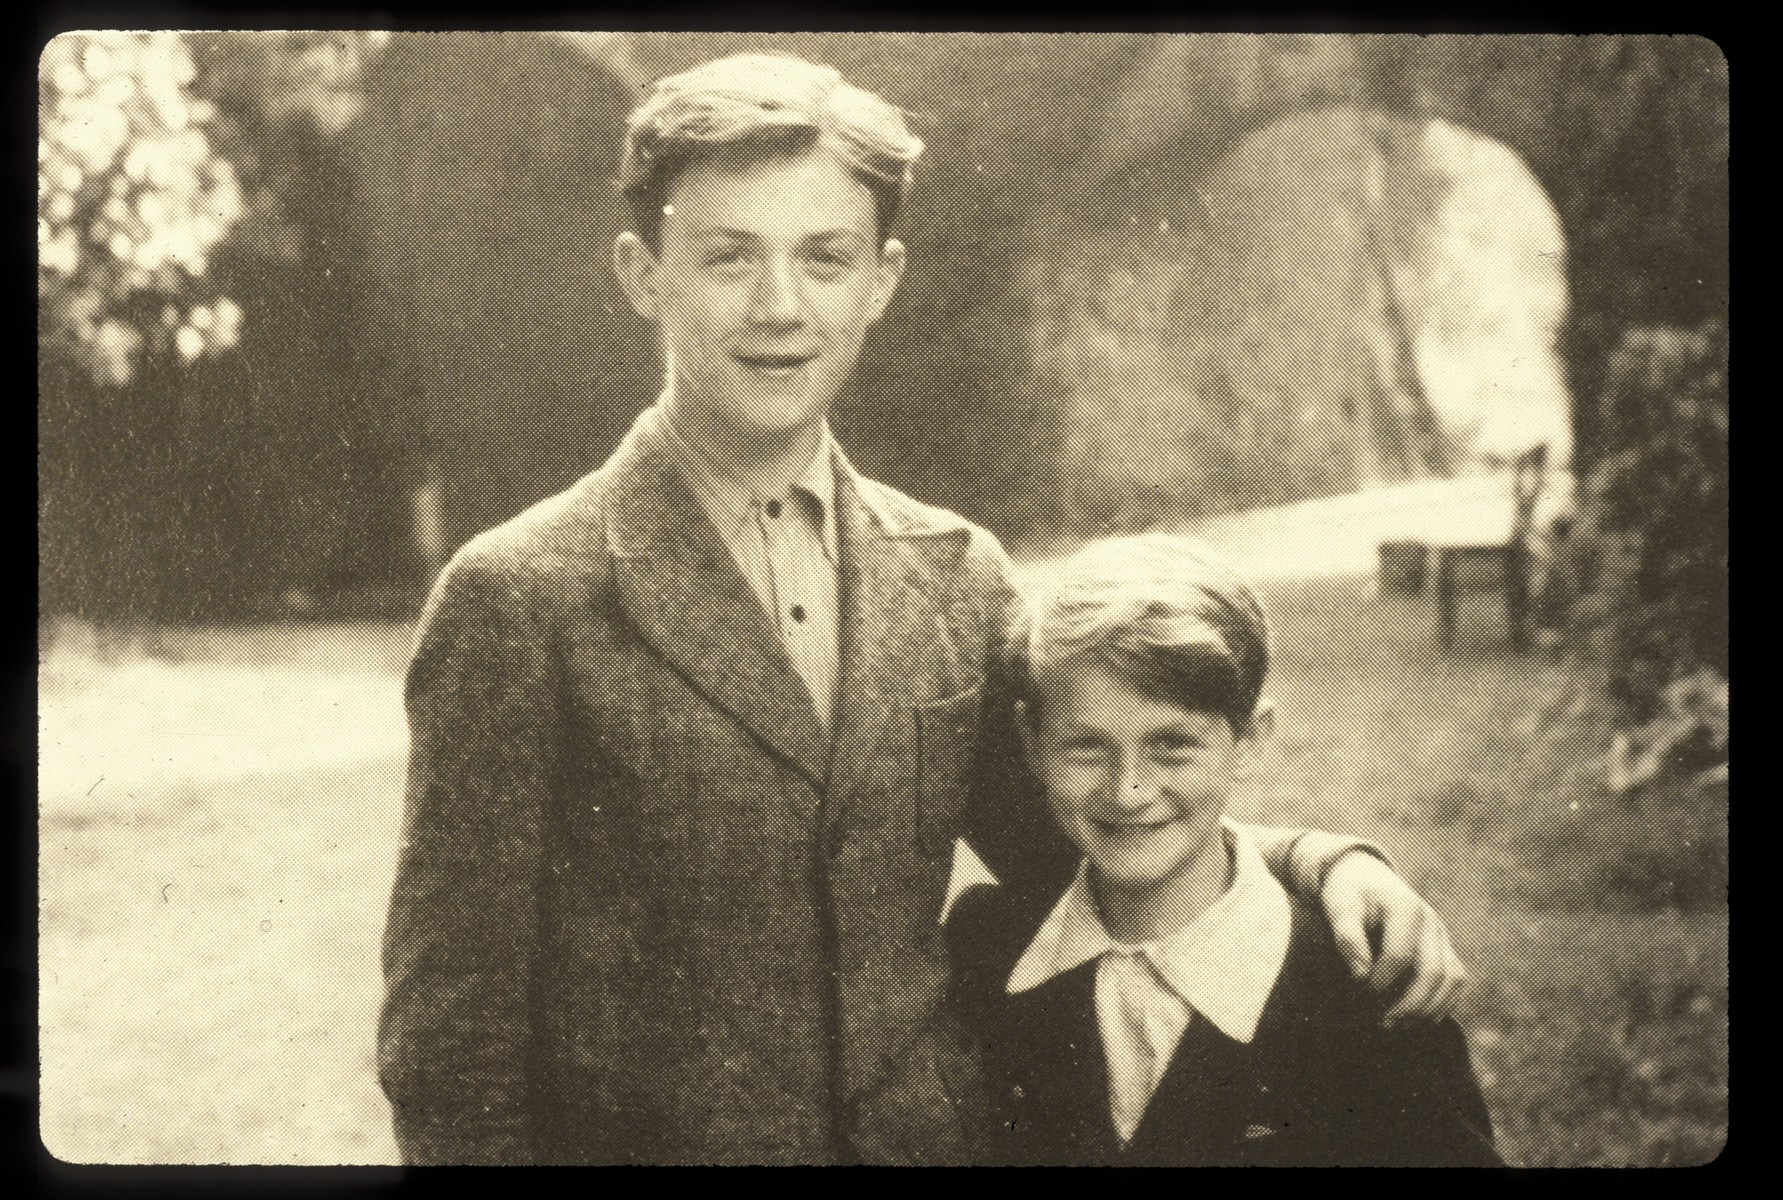 Portrait of two Jewish brothers who were saved by Father Bruno.  Pictured are Bernard and Charles Rotmil.  The photograph was taken by Father Bruno the day that the brothers arrived at Le Mont Cesar  in June 1943.